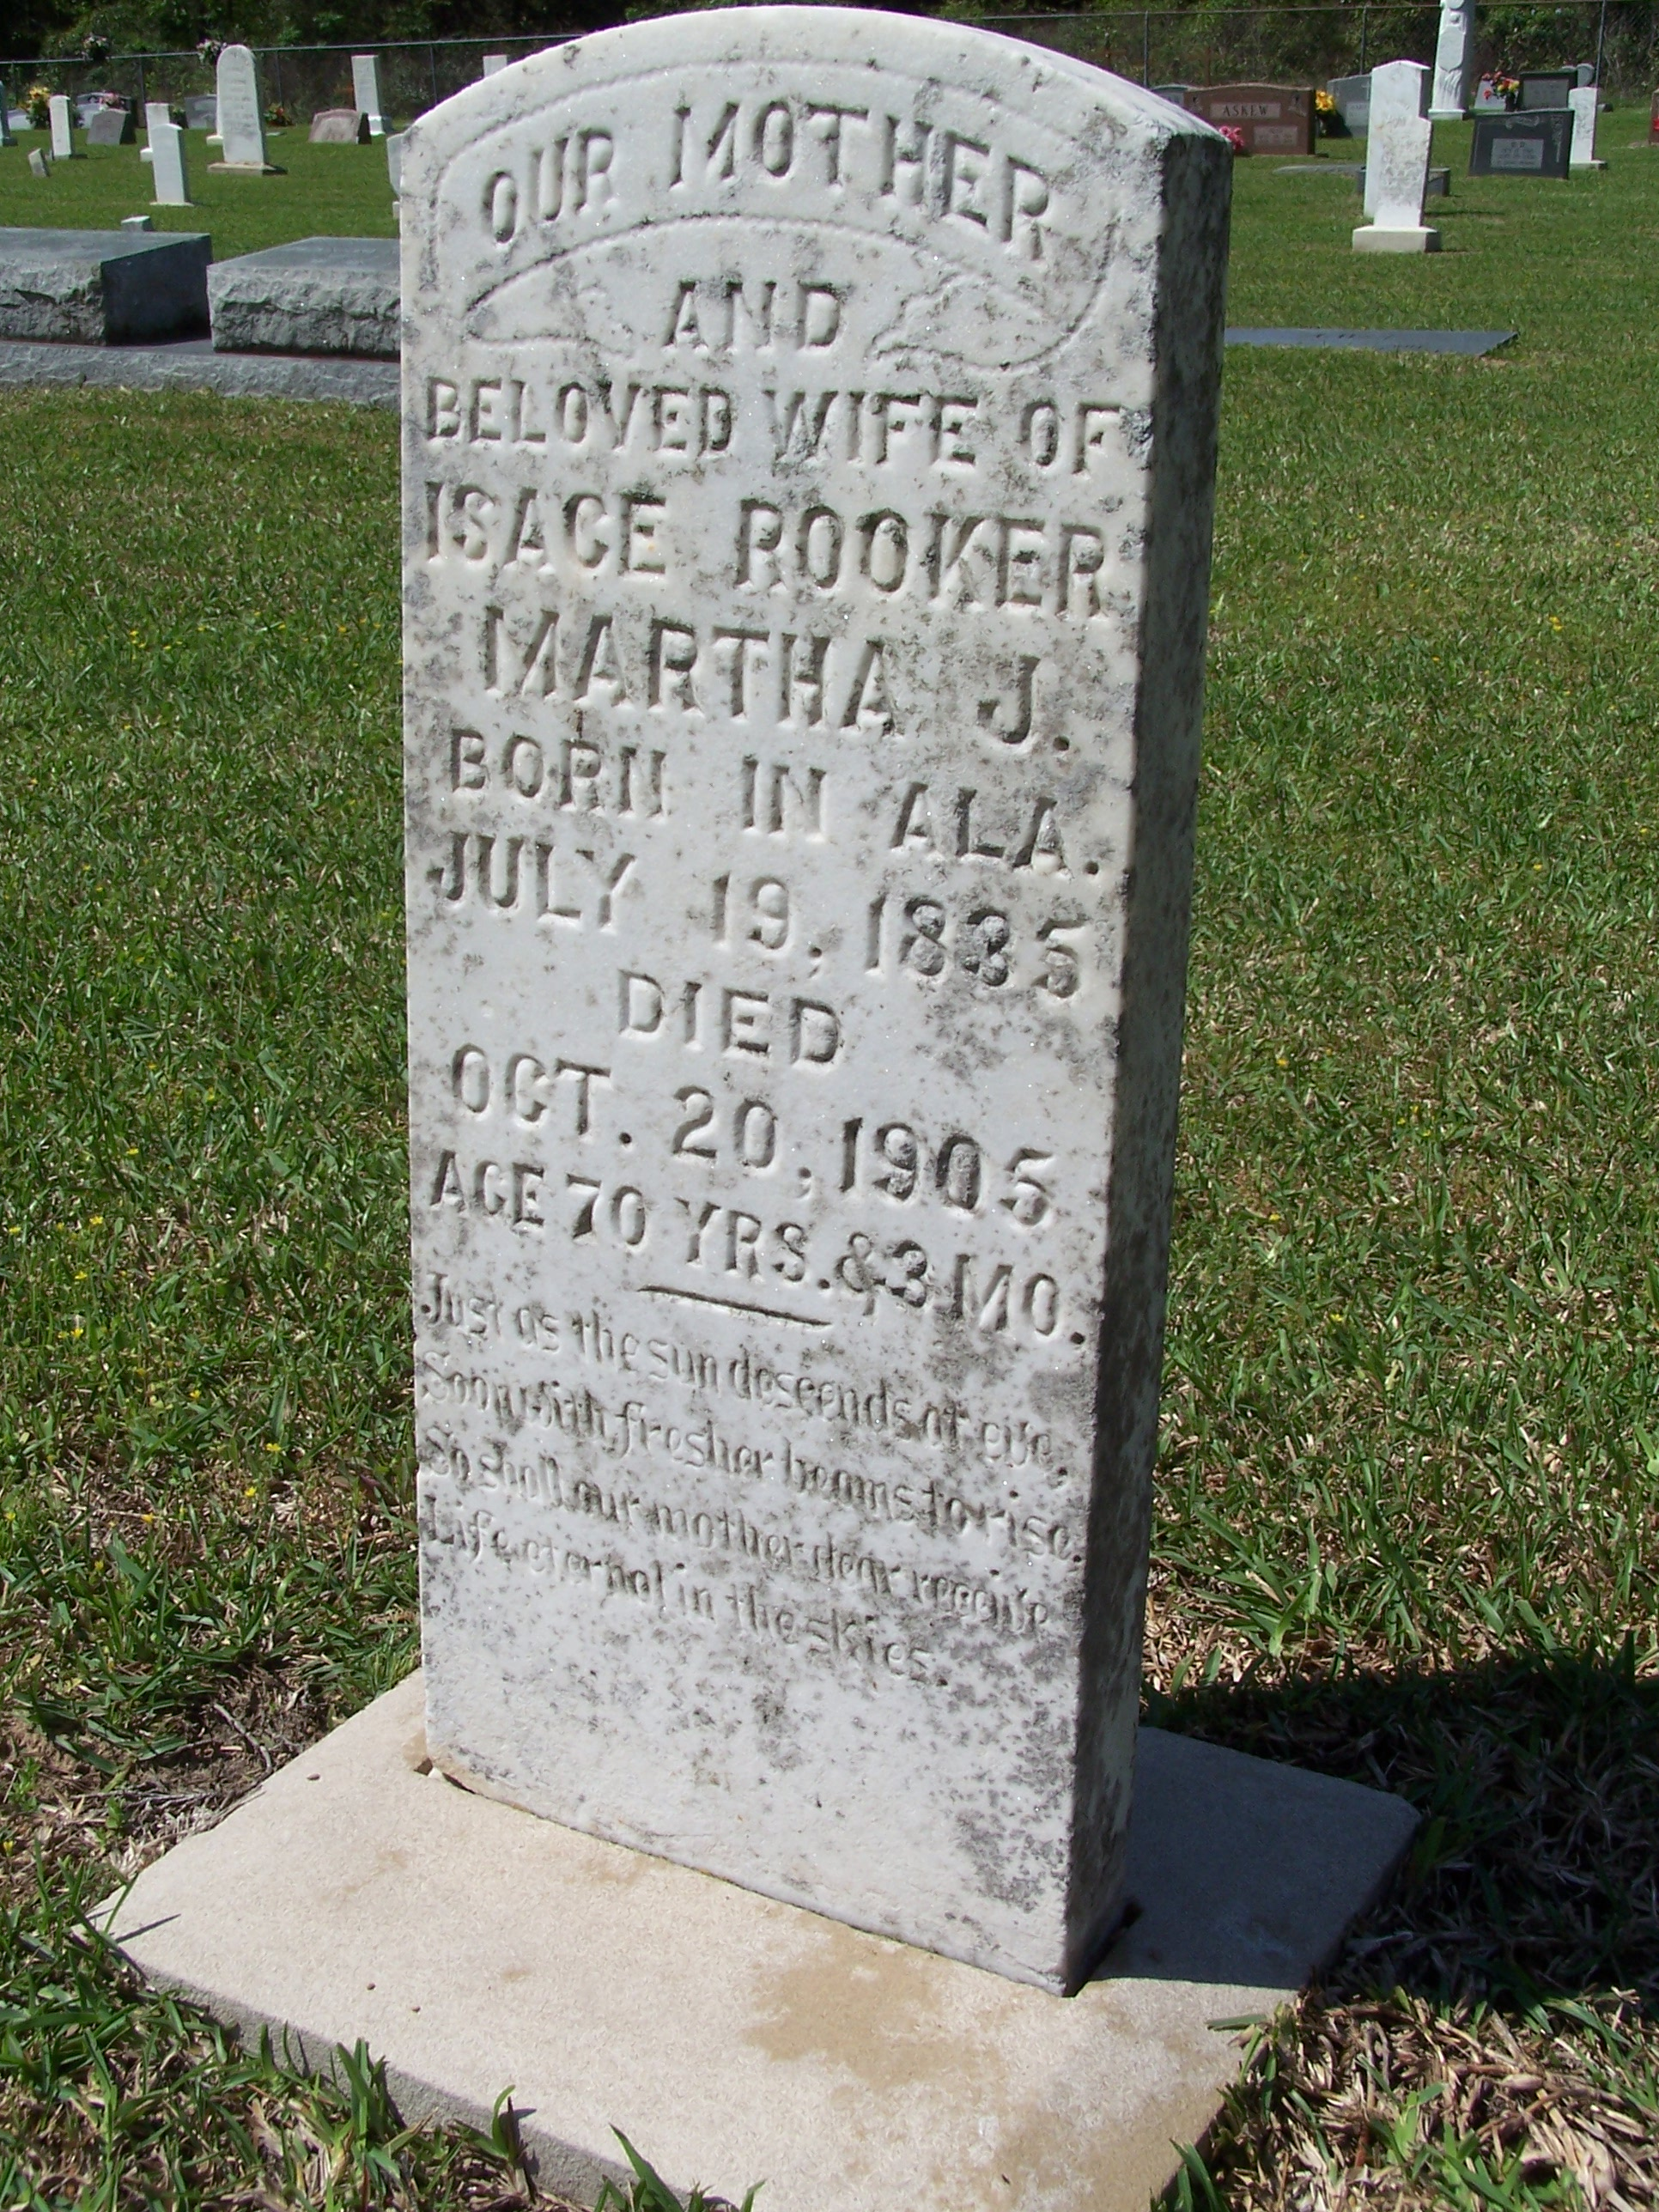 Martha J Lord Rooker, Wife of Steven Lord & Isace Rooker